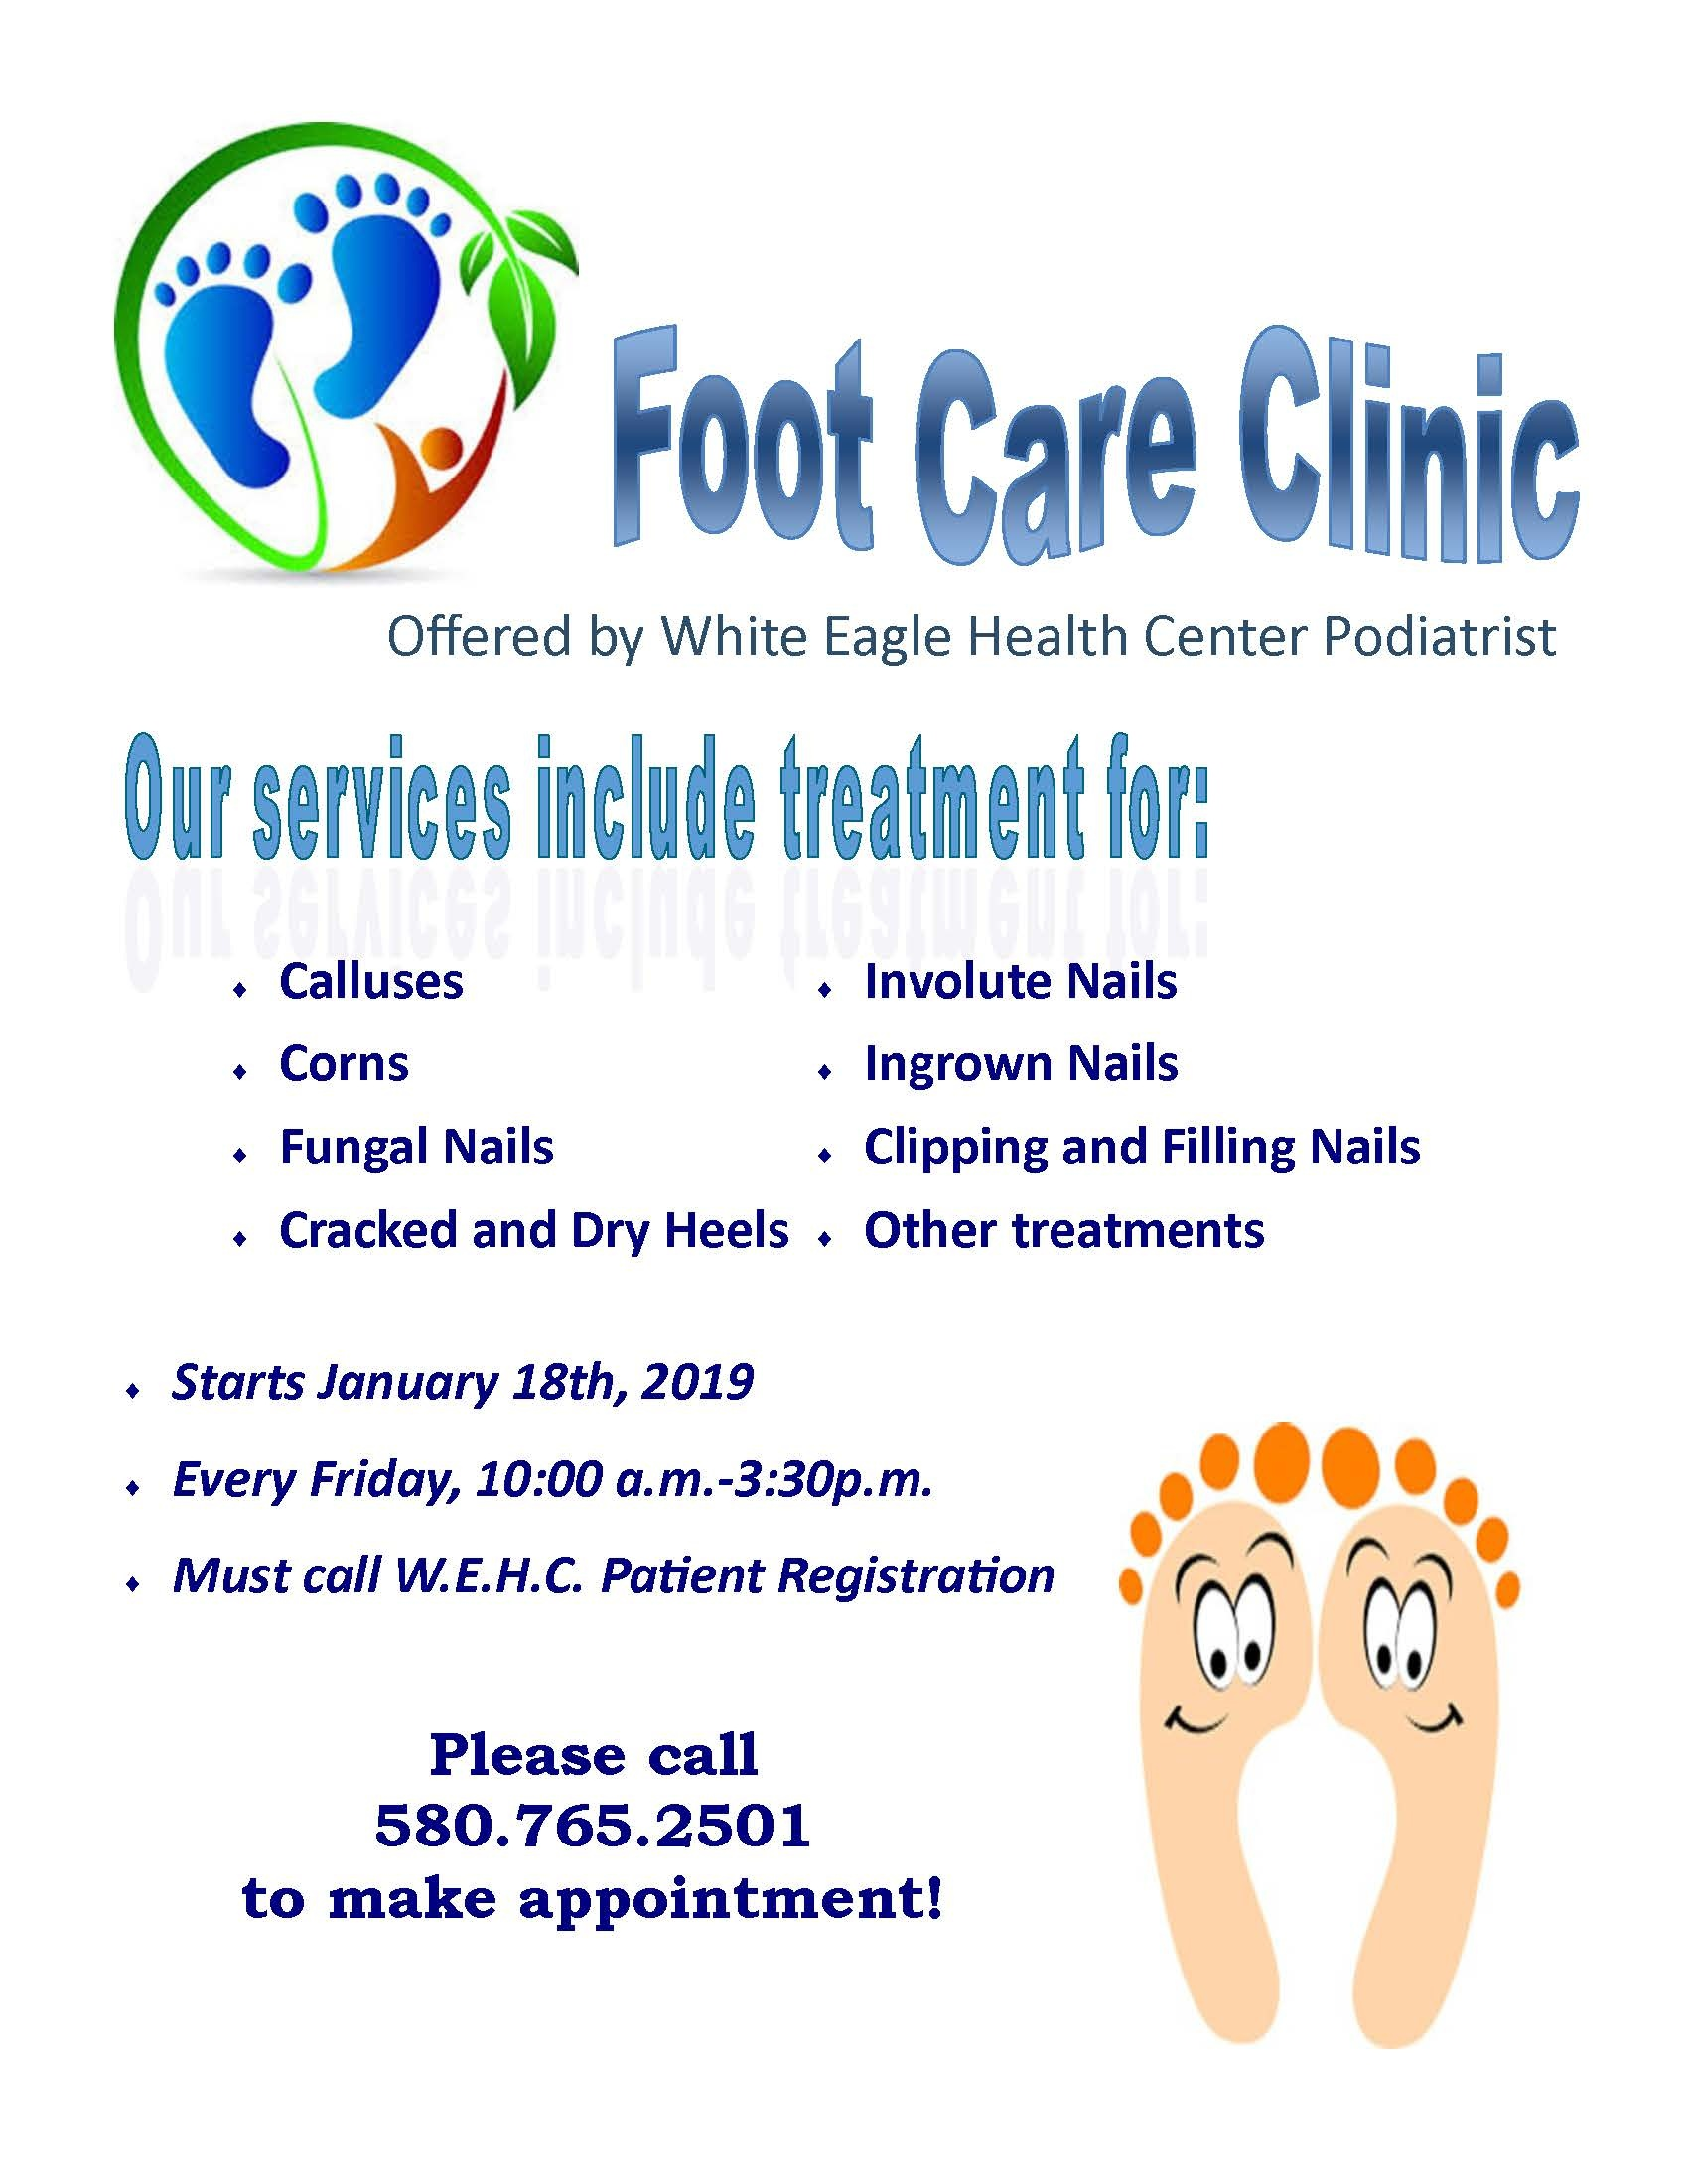 https://0201.nccdn.net/4_2/000/000/023/130/Podiatry-flier-1700x2200.jpg